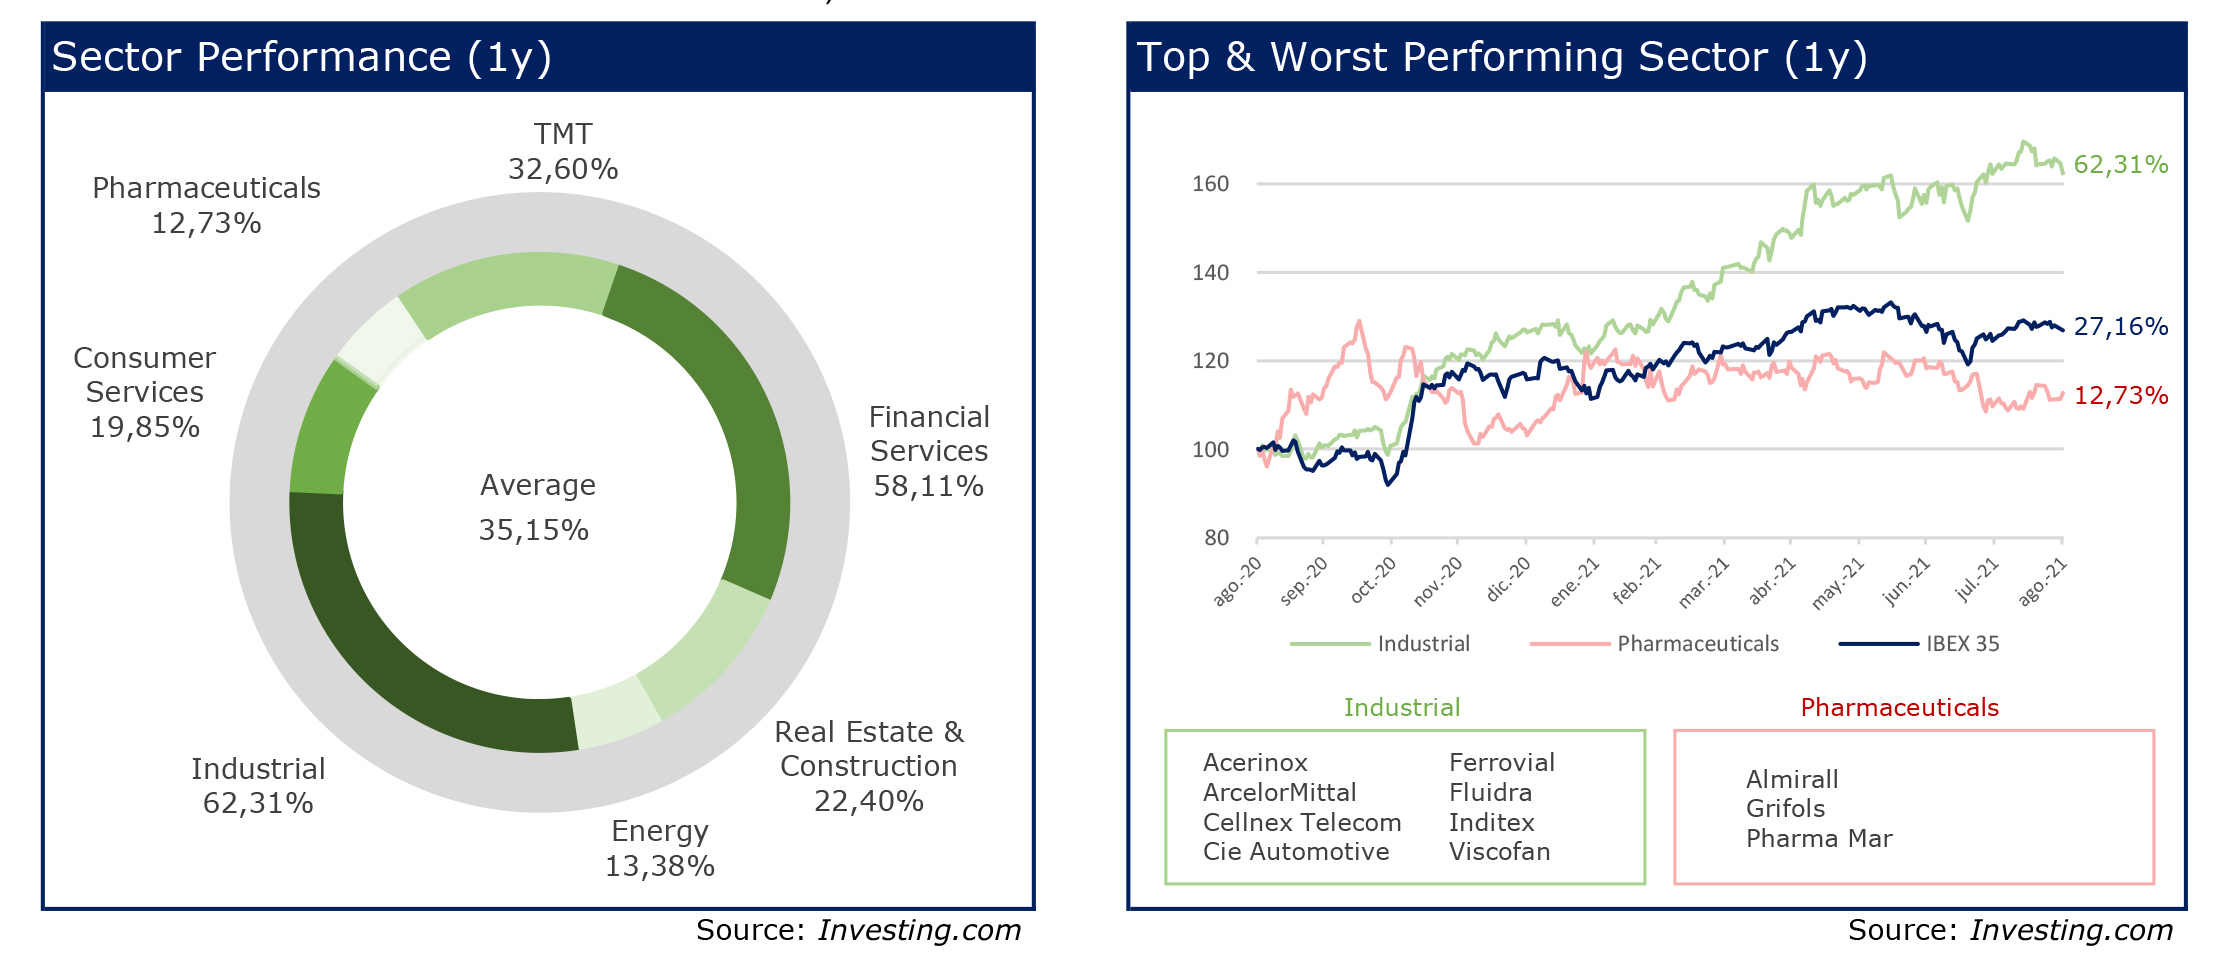 RS Corporate Finance 24 Chart Sector Performance-Top & worst sector agosto 1y 2021